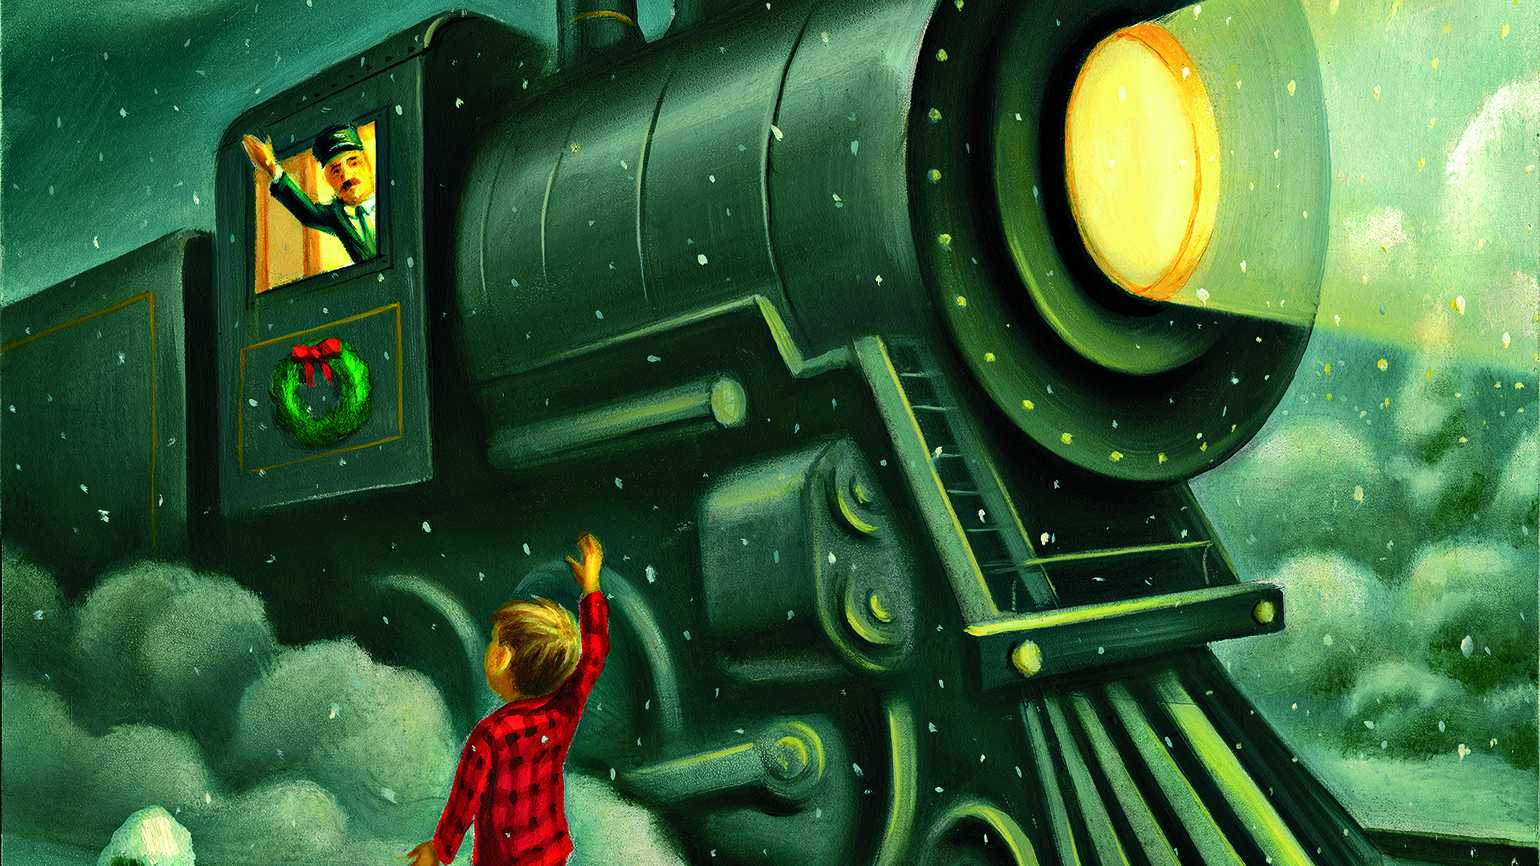 Illustration of a boy waiving to a train conductor